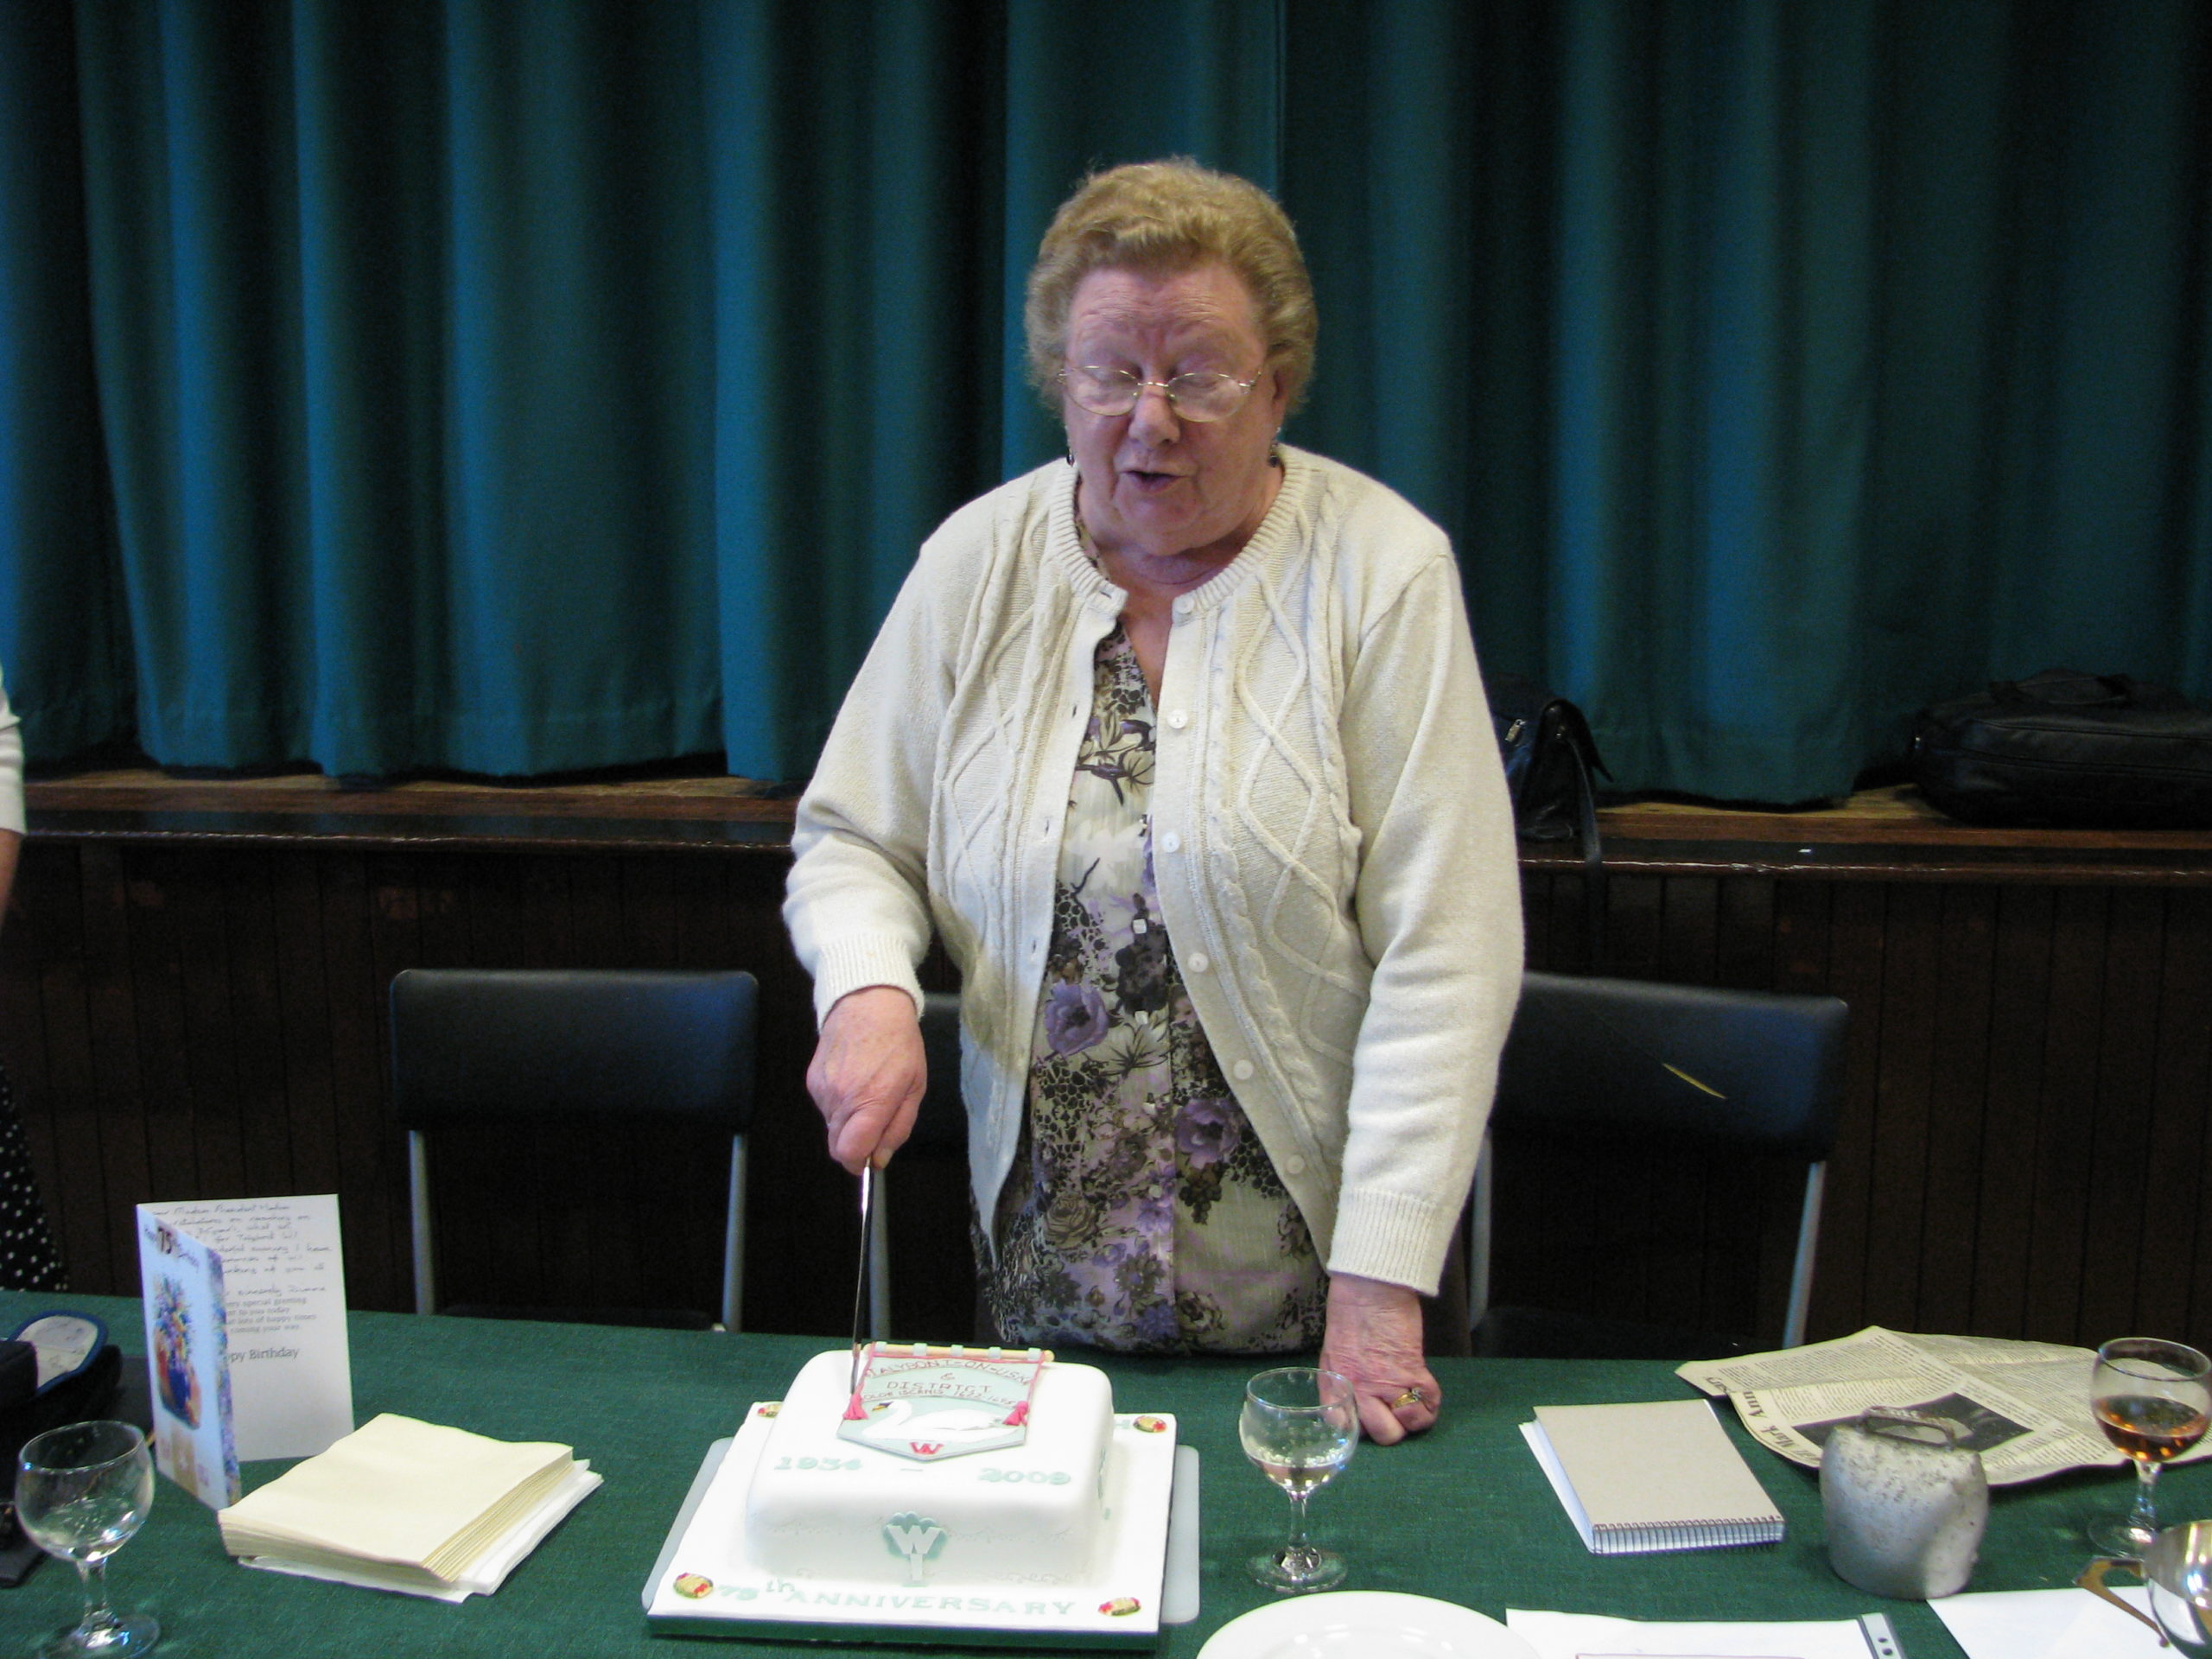 President Morfydd Morgan celebrates the 75th national Anniversary of the WI